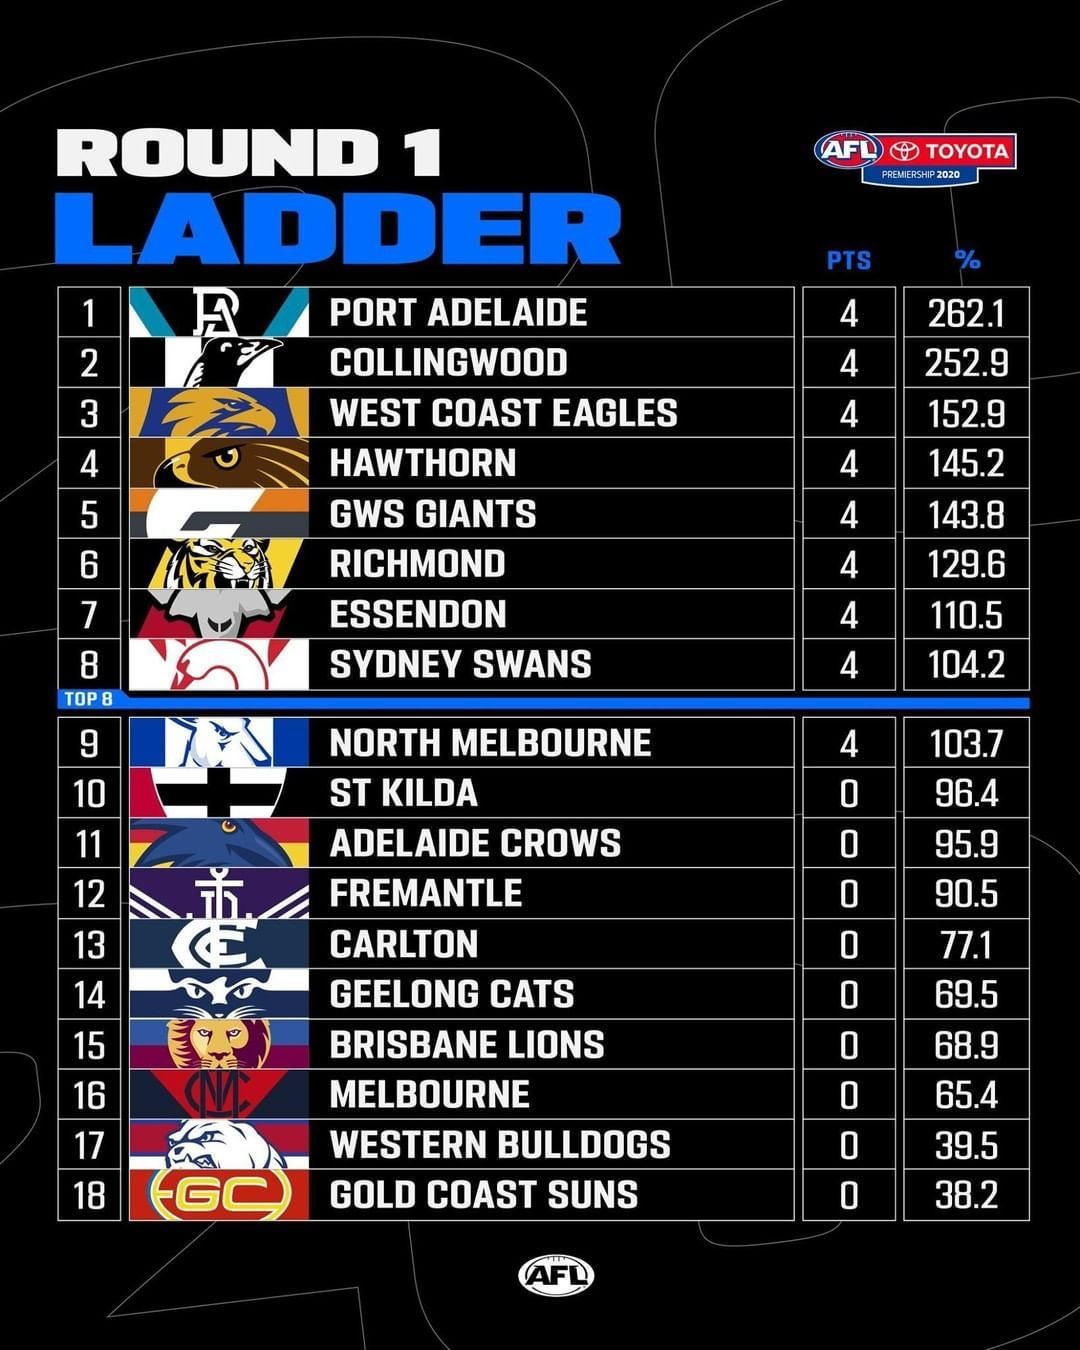 Afl On Instagram A Reminder Of How The Ladder Stands One Round Into The 2020 Toyota Afl Premiership Season In 2020 Afl Premiership Afl Geelong Cats